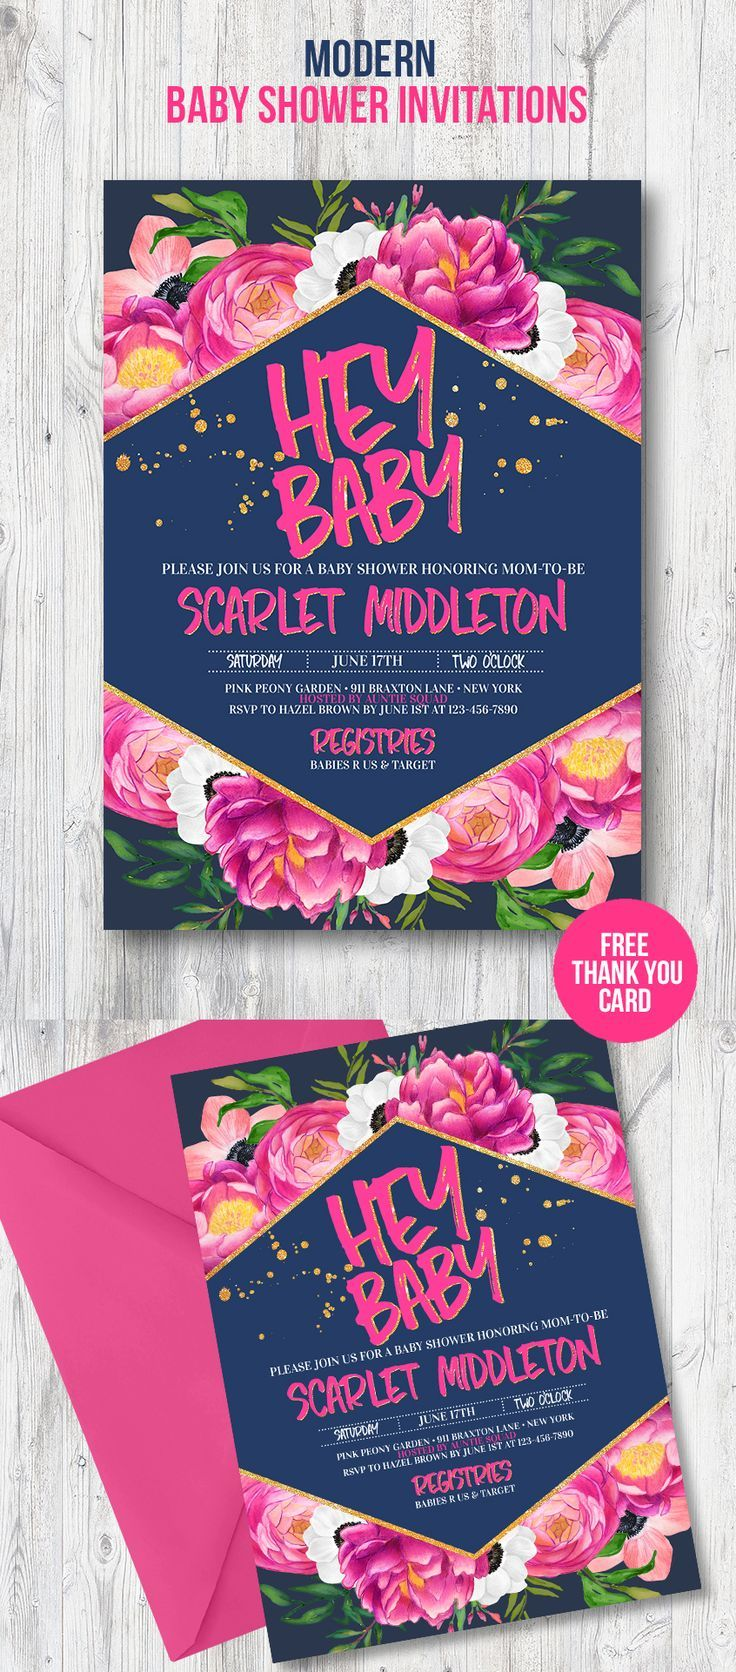 Modern baby shower invitation for your trendy party theme with pink peonies and anemones with gold glitter details. Perfect baby shower card to invite your guests to most amazing spring or summer party of the year to celebrate and shower the mom-to-be.